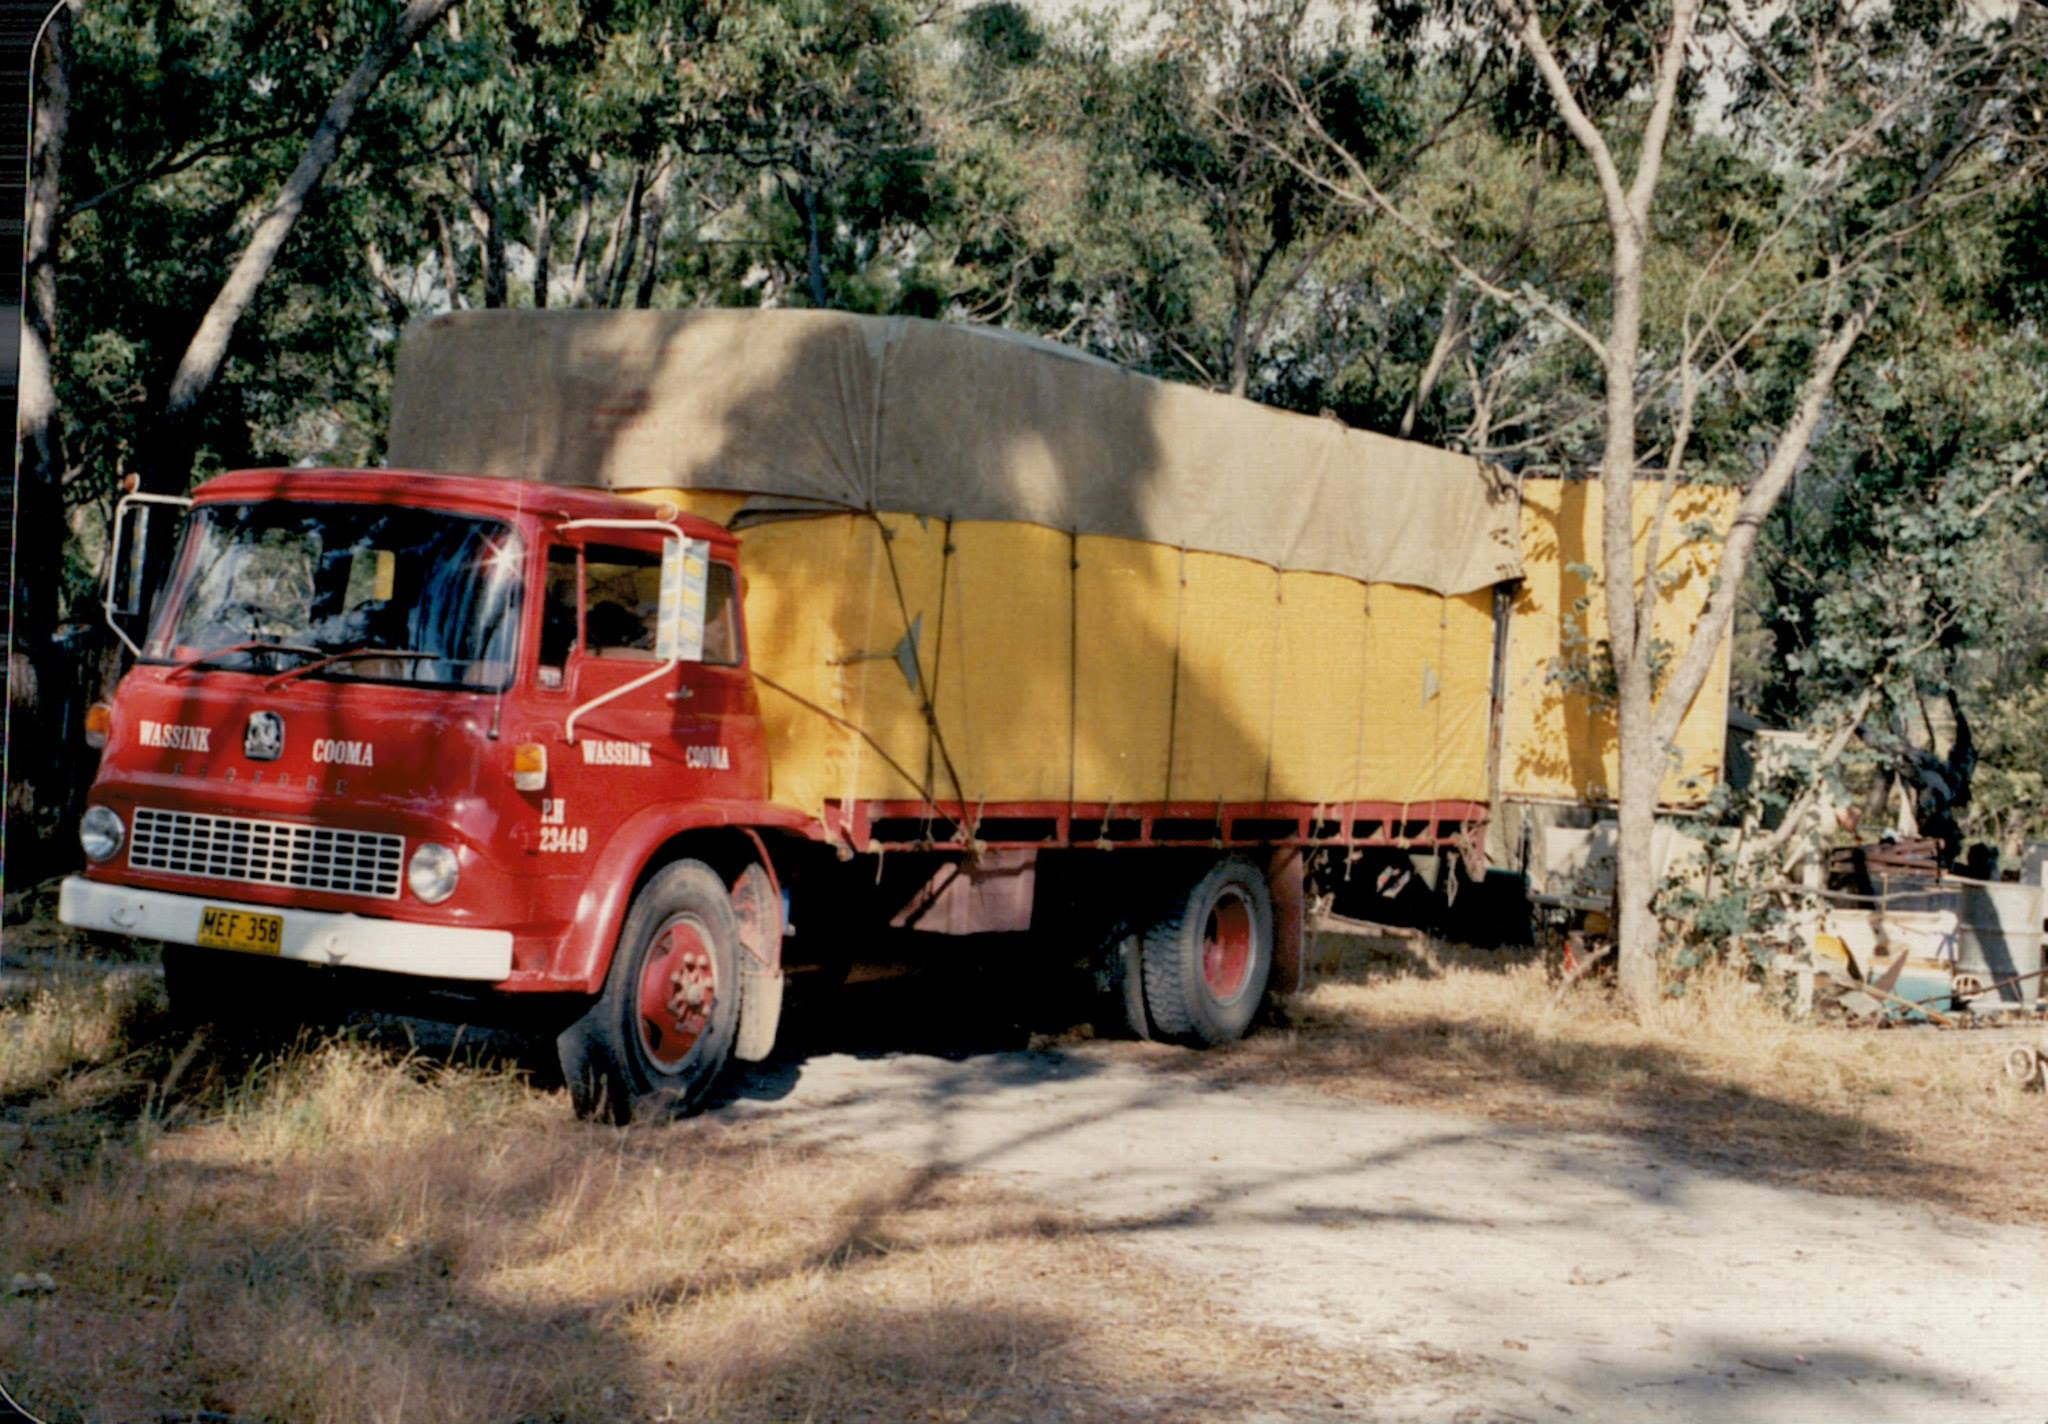 z-First-truck-of-Wassink-Cooma-Bedford-Unloading-in-Victoria